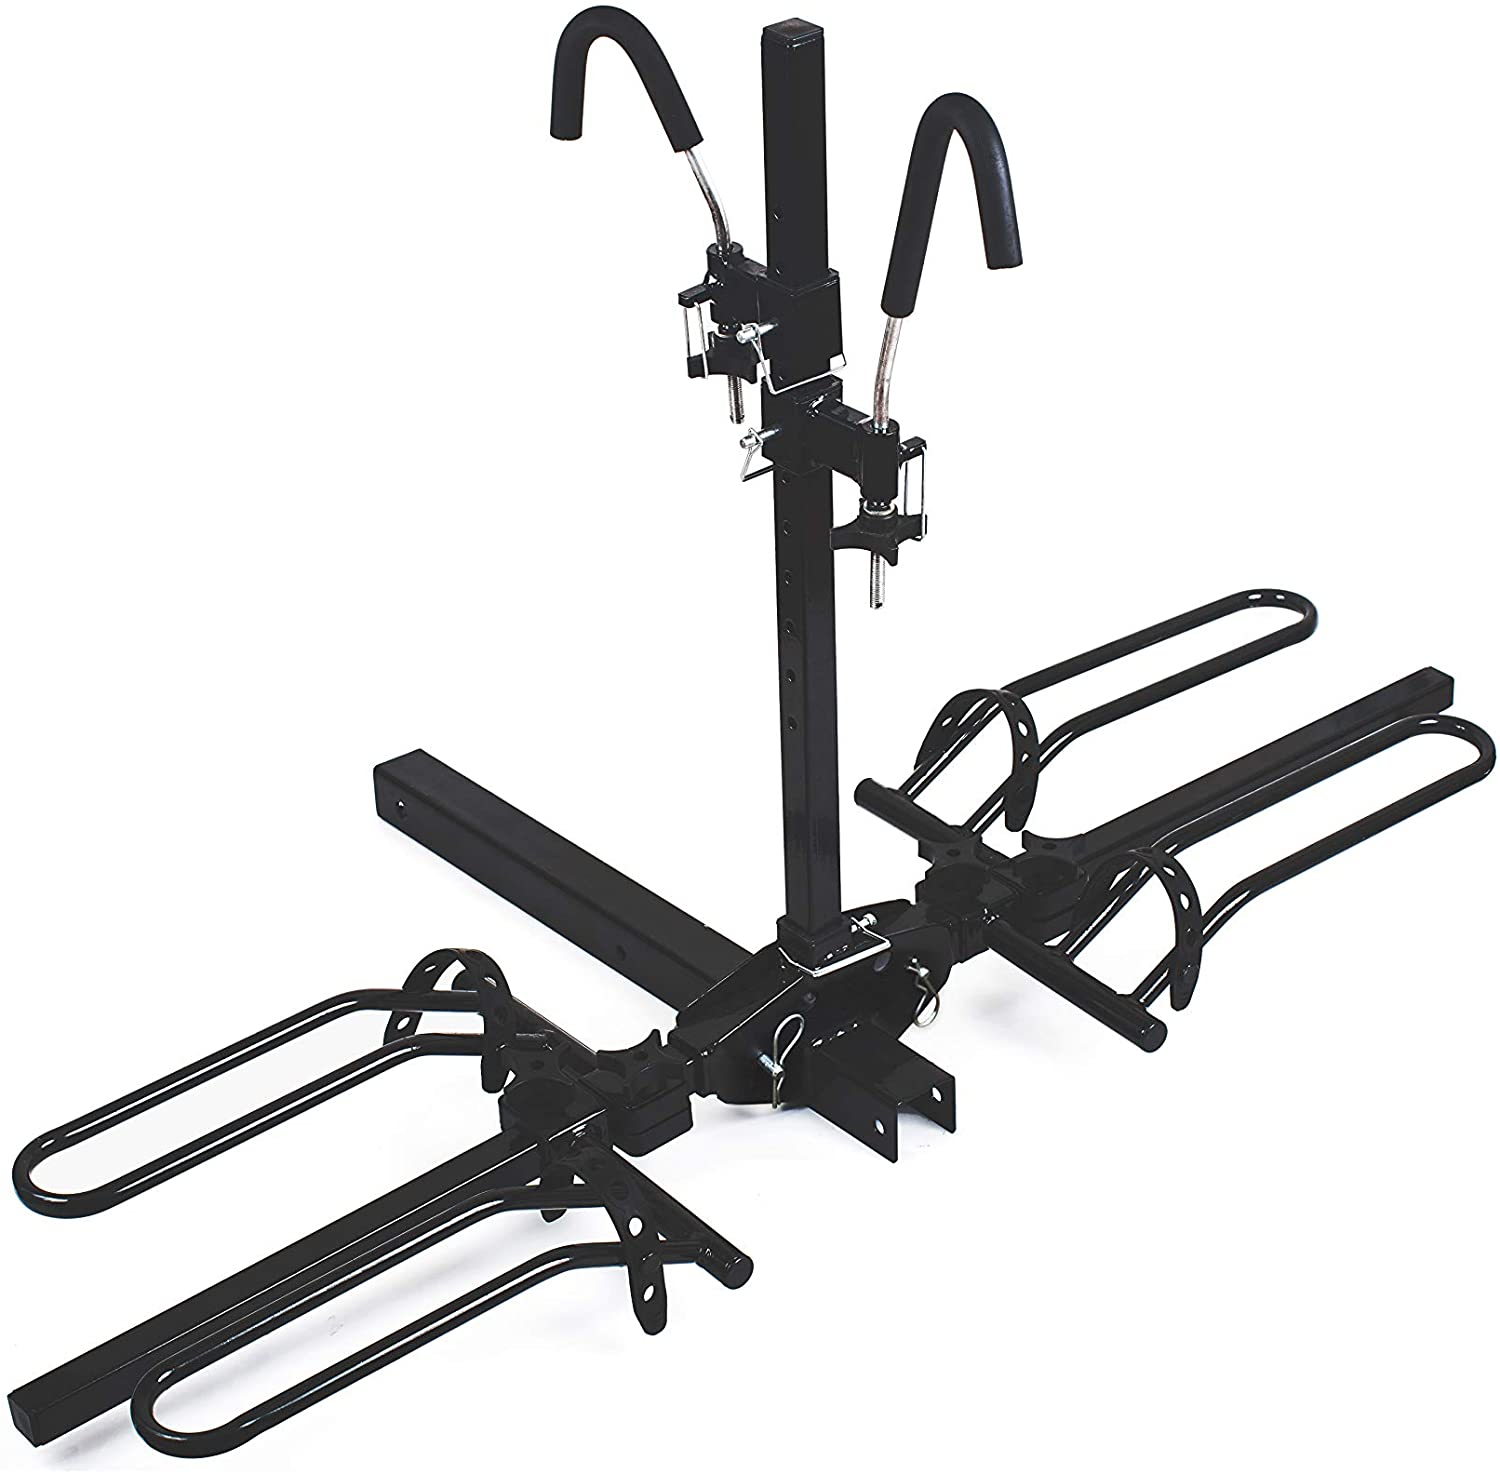 MaxxHaul 50027 Hitch Mount Platform Style 2-Bike Rack